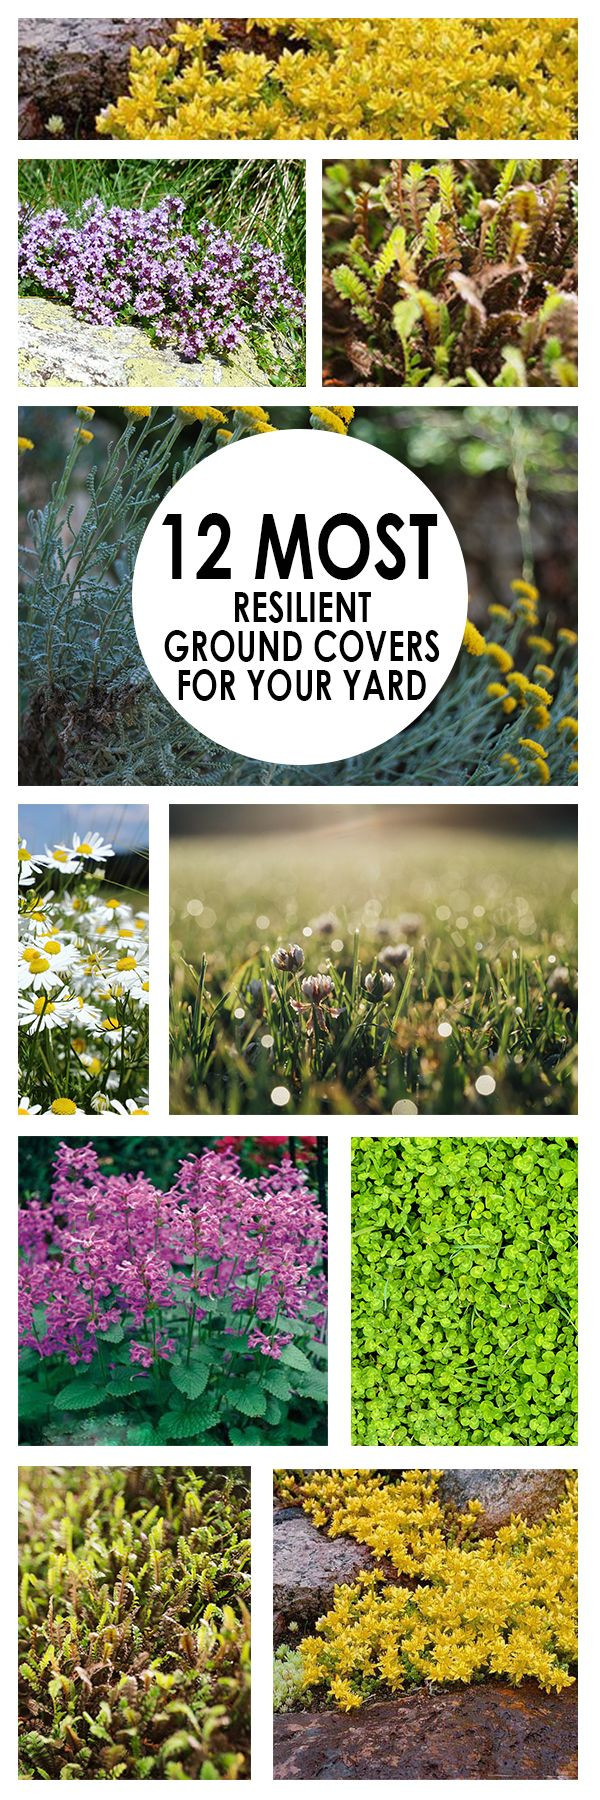 12 most resilient ground covers for your yard ground covering